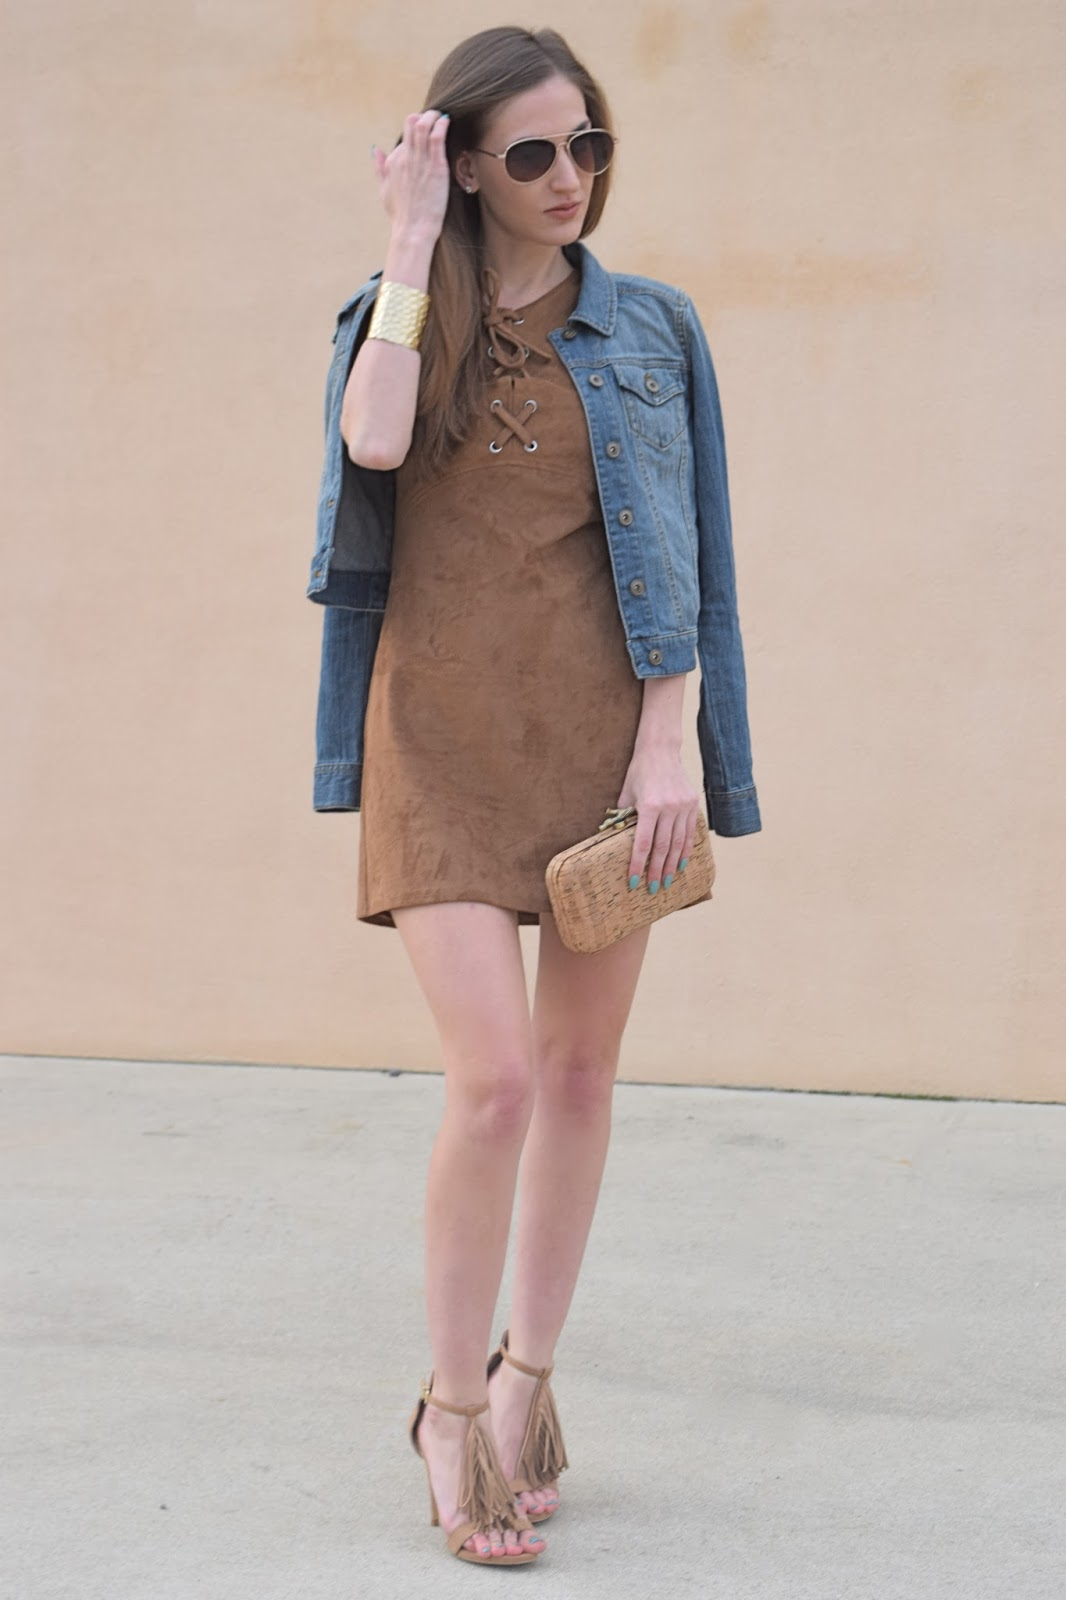 wearing express suede lace up dress, wearing express fringe tassel suede heels, express dress